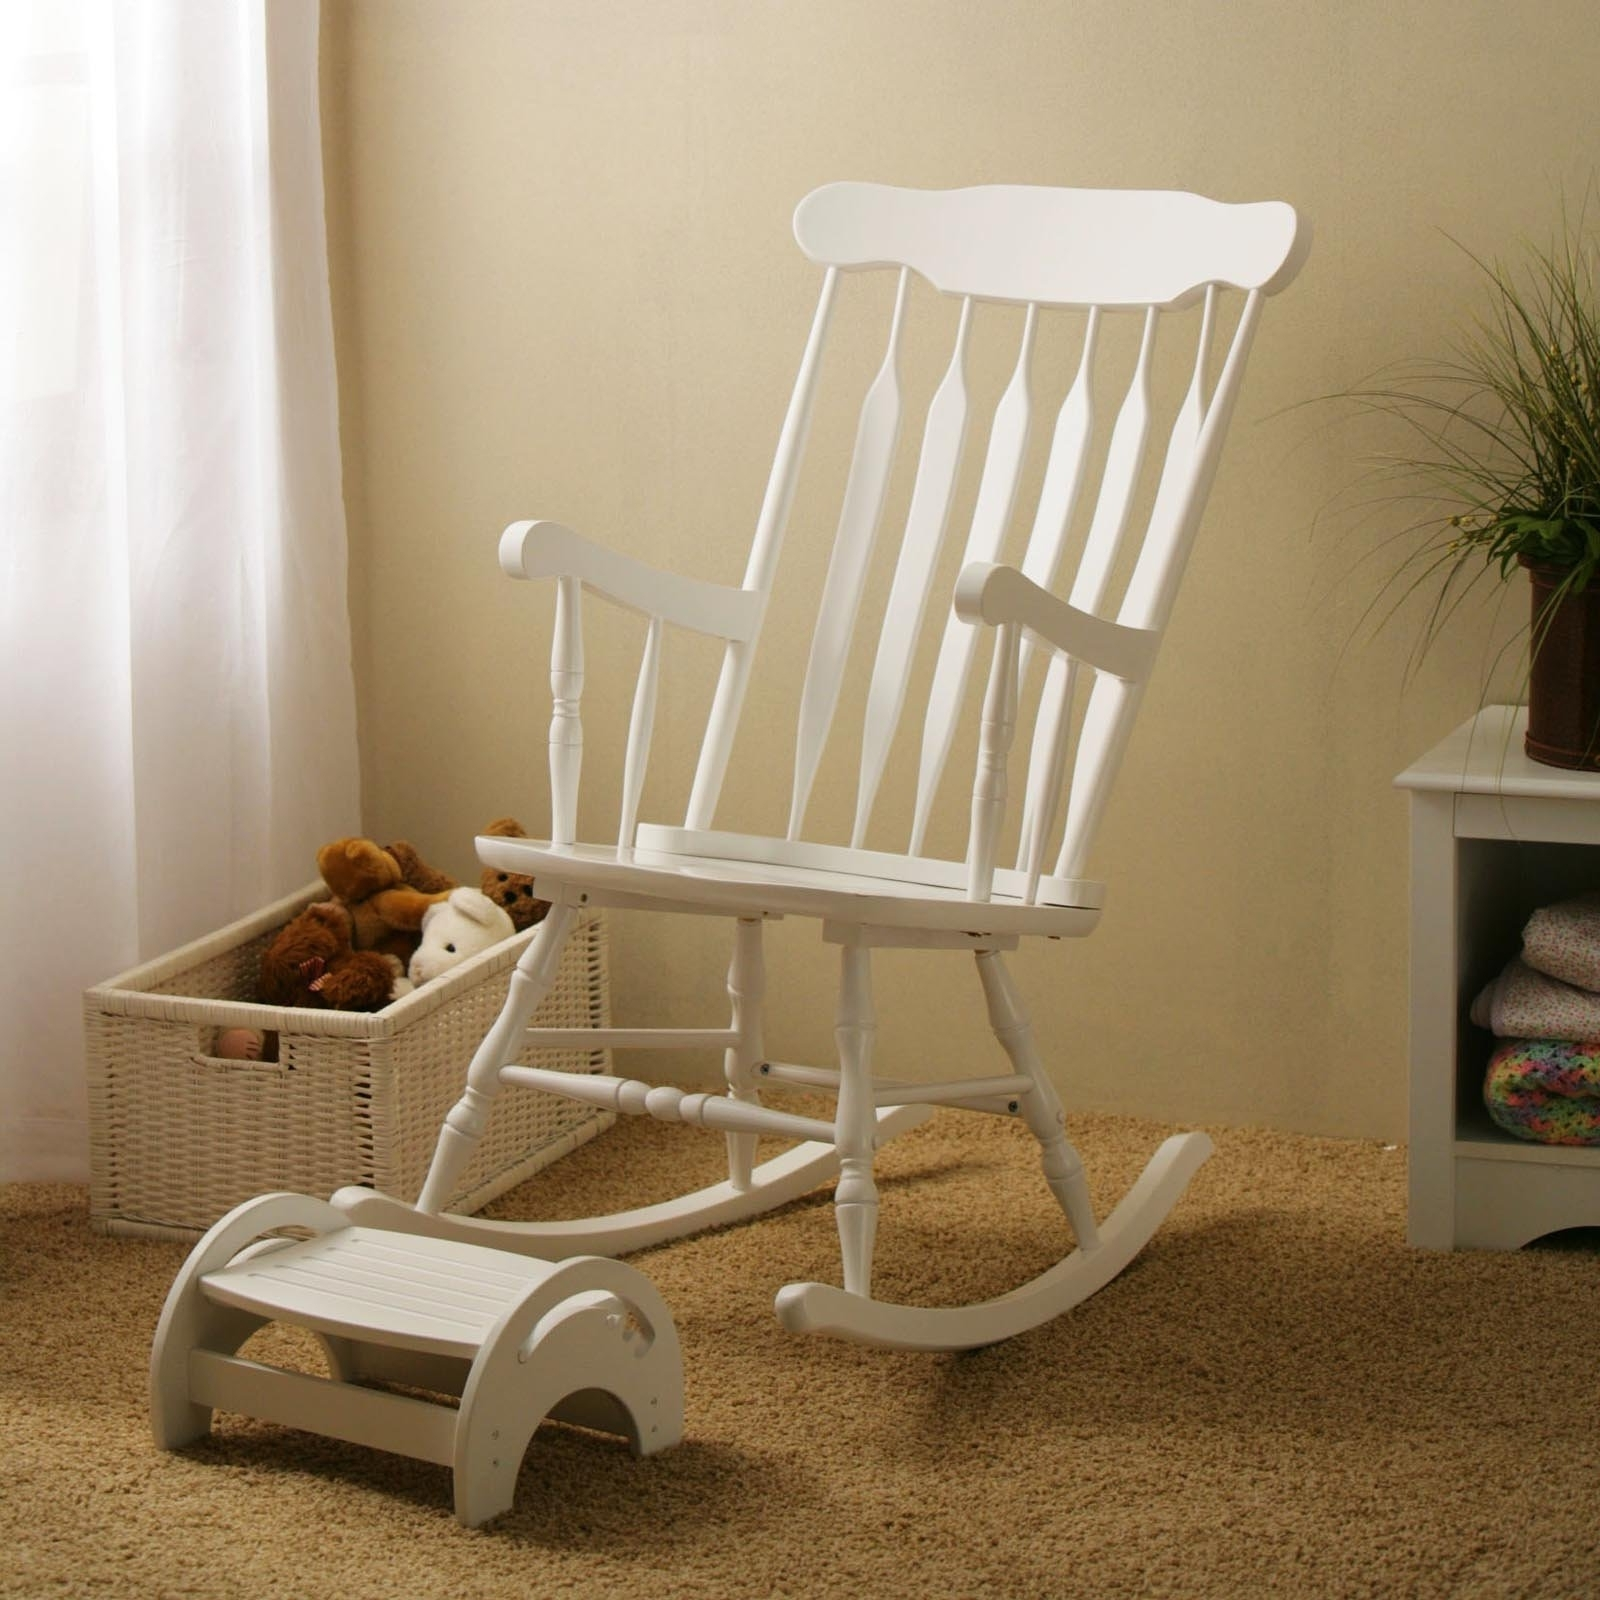 Famous Nursery Rocking Chair Melbourne – Nursery Rocking Chair For Mom And Within Rocking Chairs With Footstool (View 5 of 15)